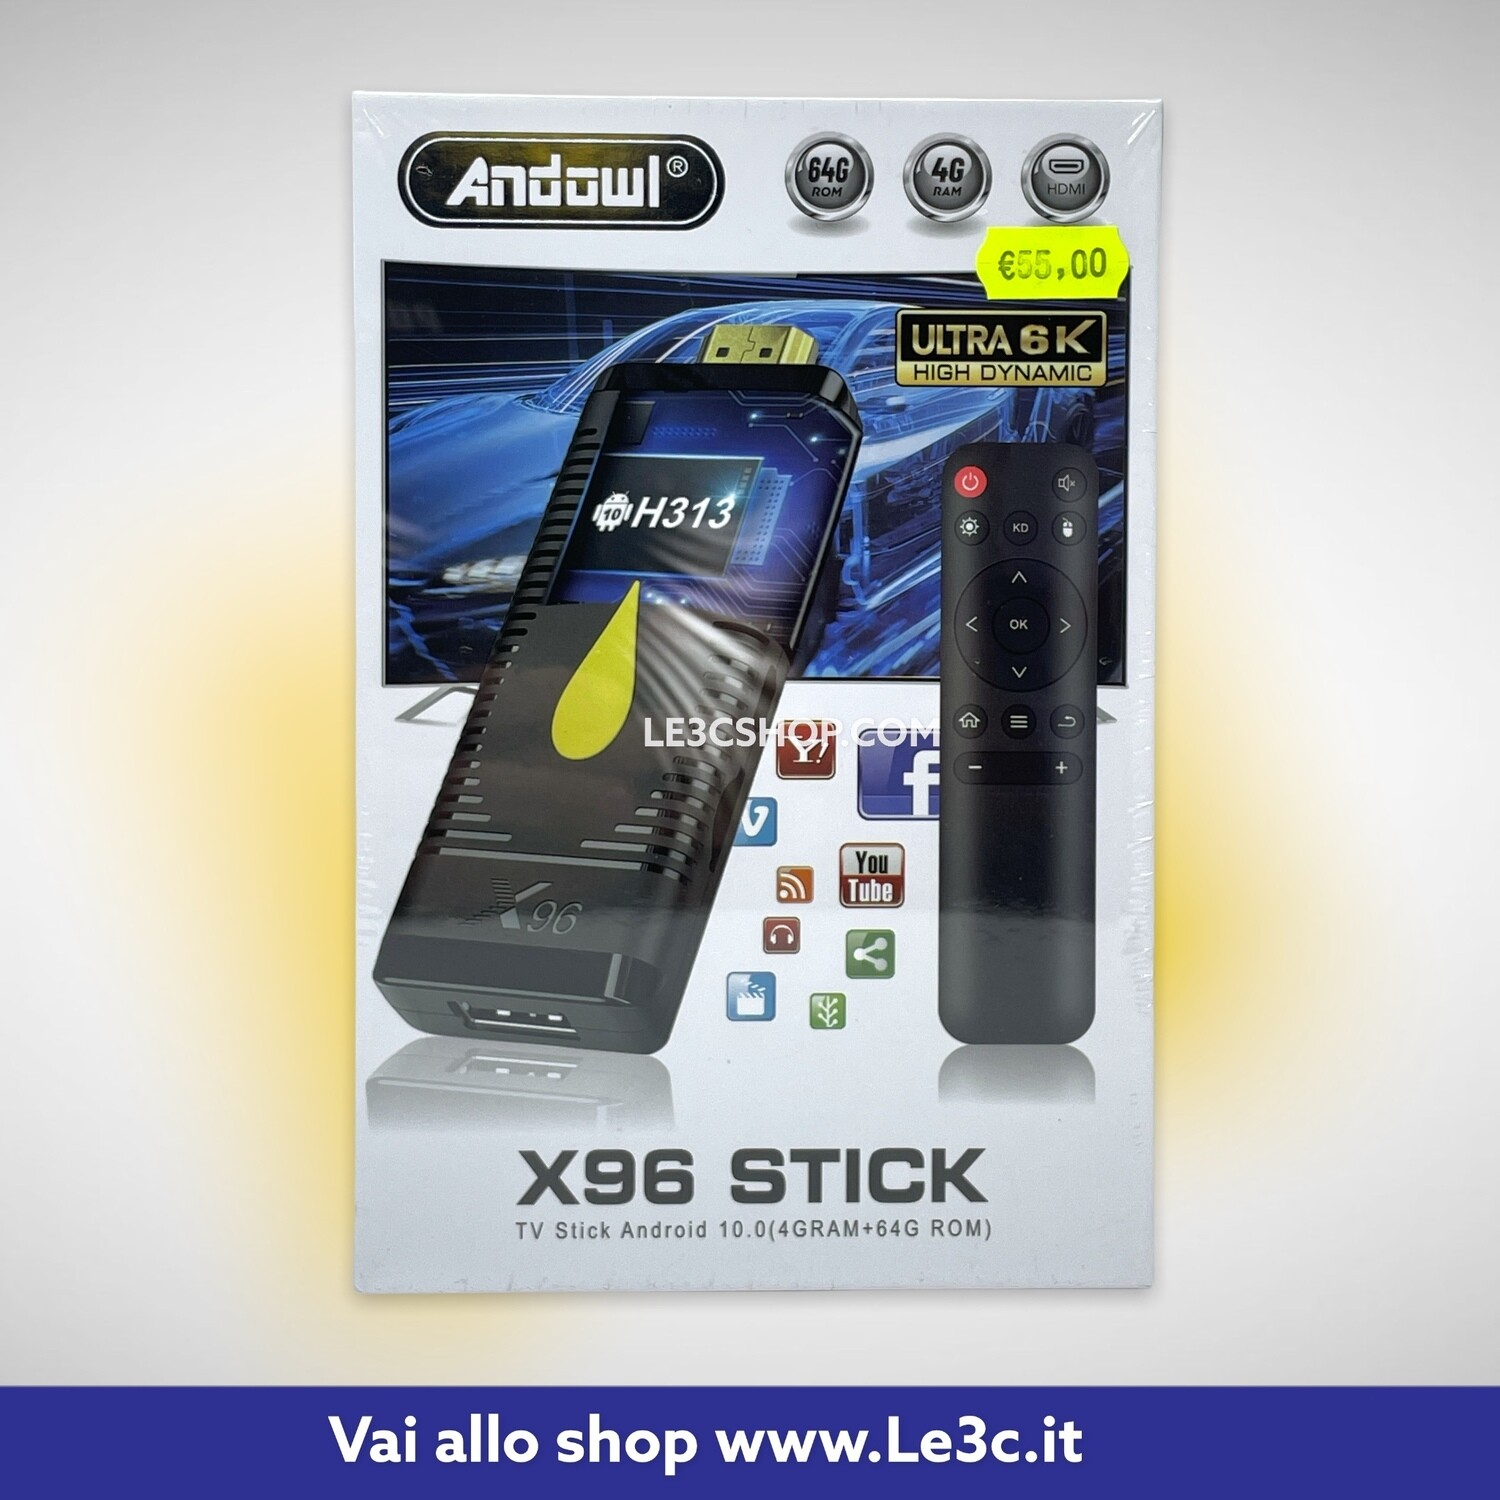 X96 tv stick Android 4 gb Ram android 10.0 64 gb rom 6k